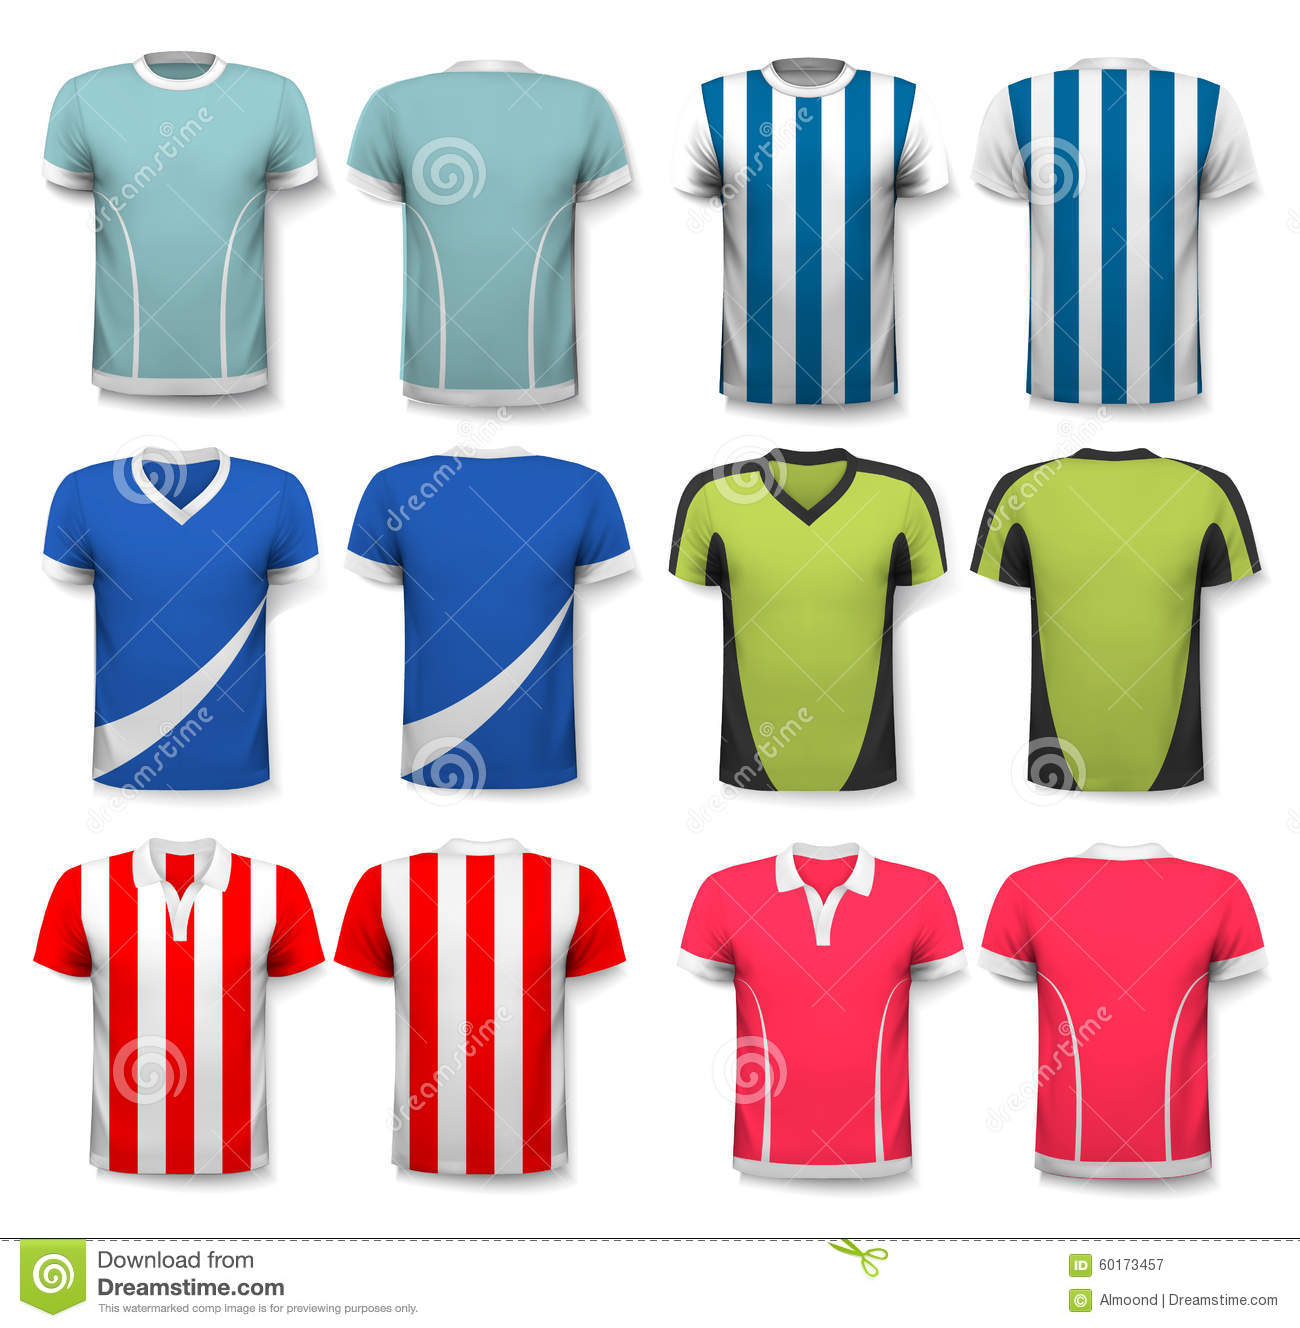 Design your own t-shirt download